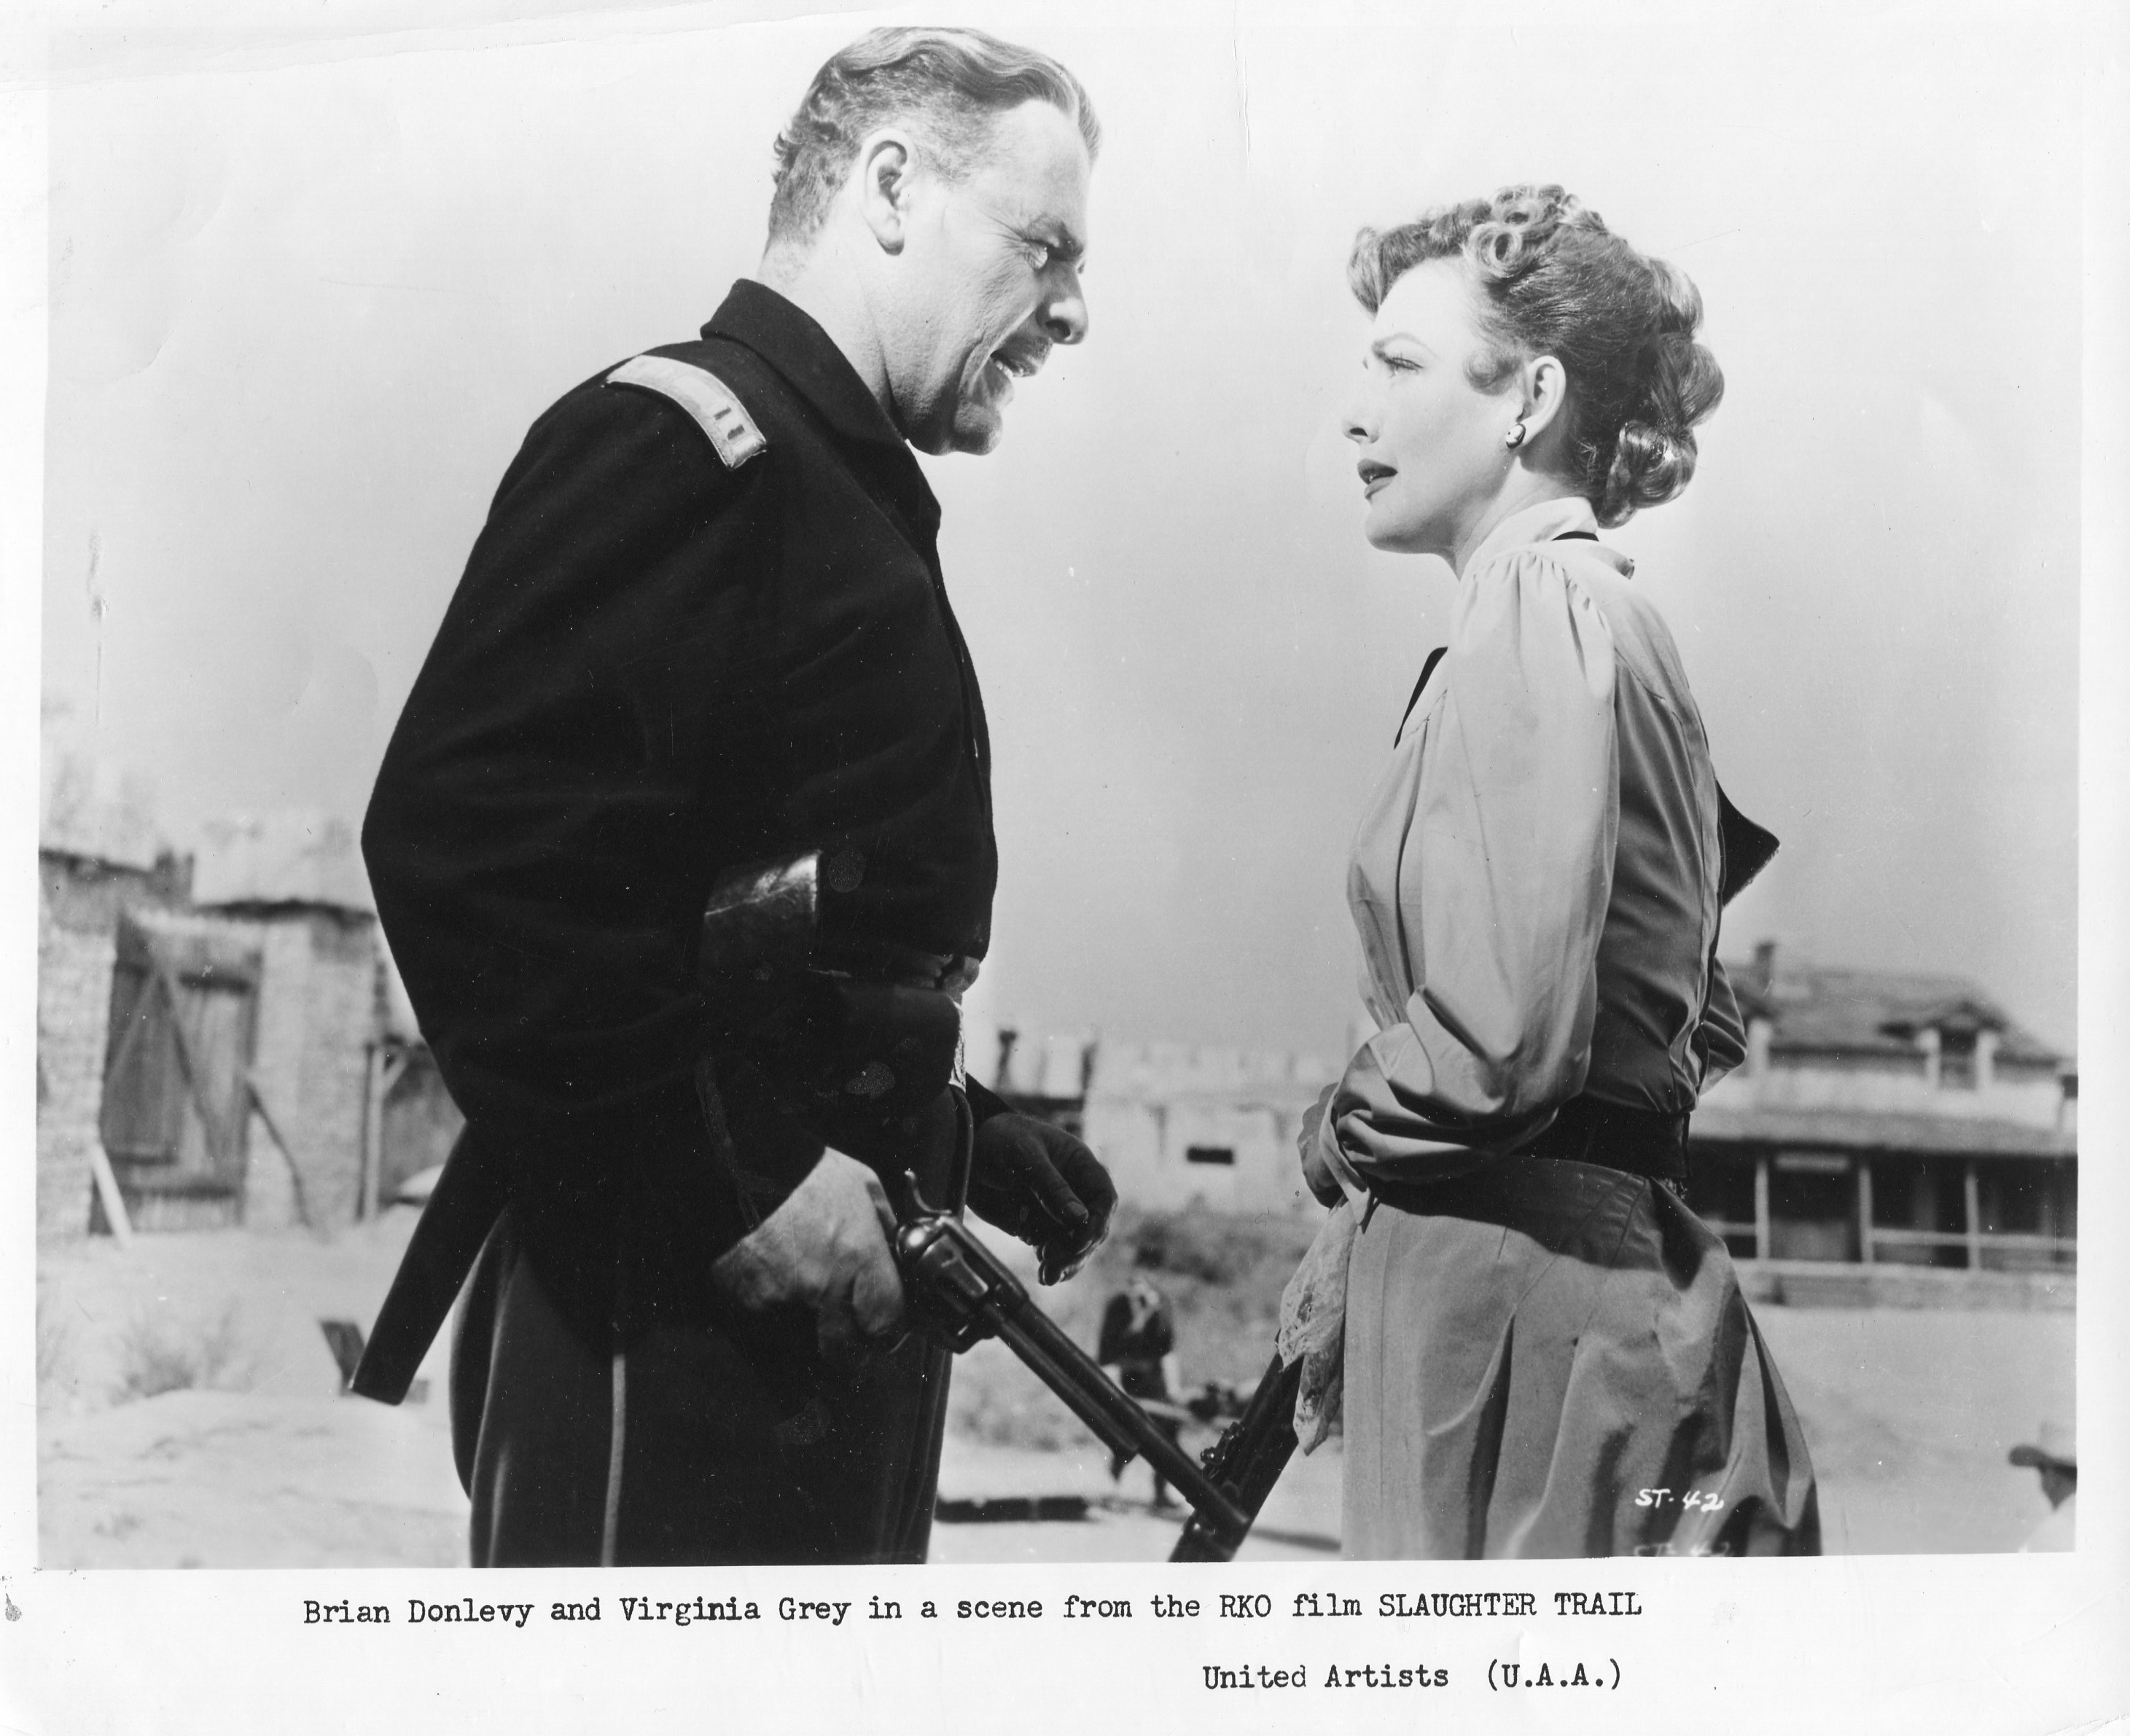 Brian Donlevy and Virginia Grey in Slaughter Trail (1951)